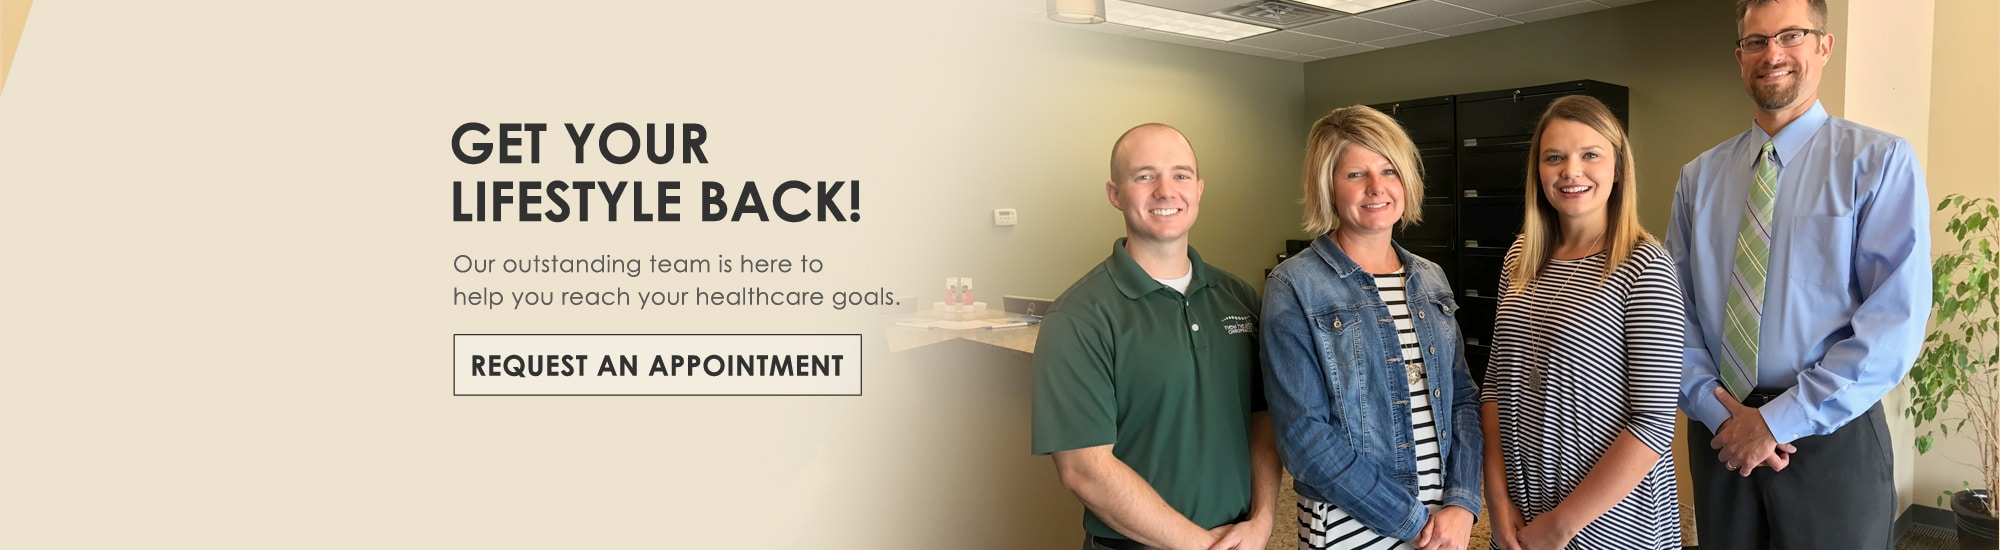 Chiropractor Effingham IL request appointment